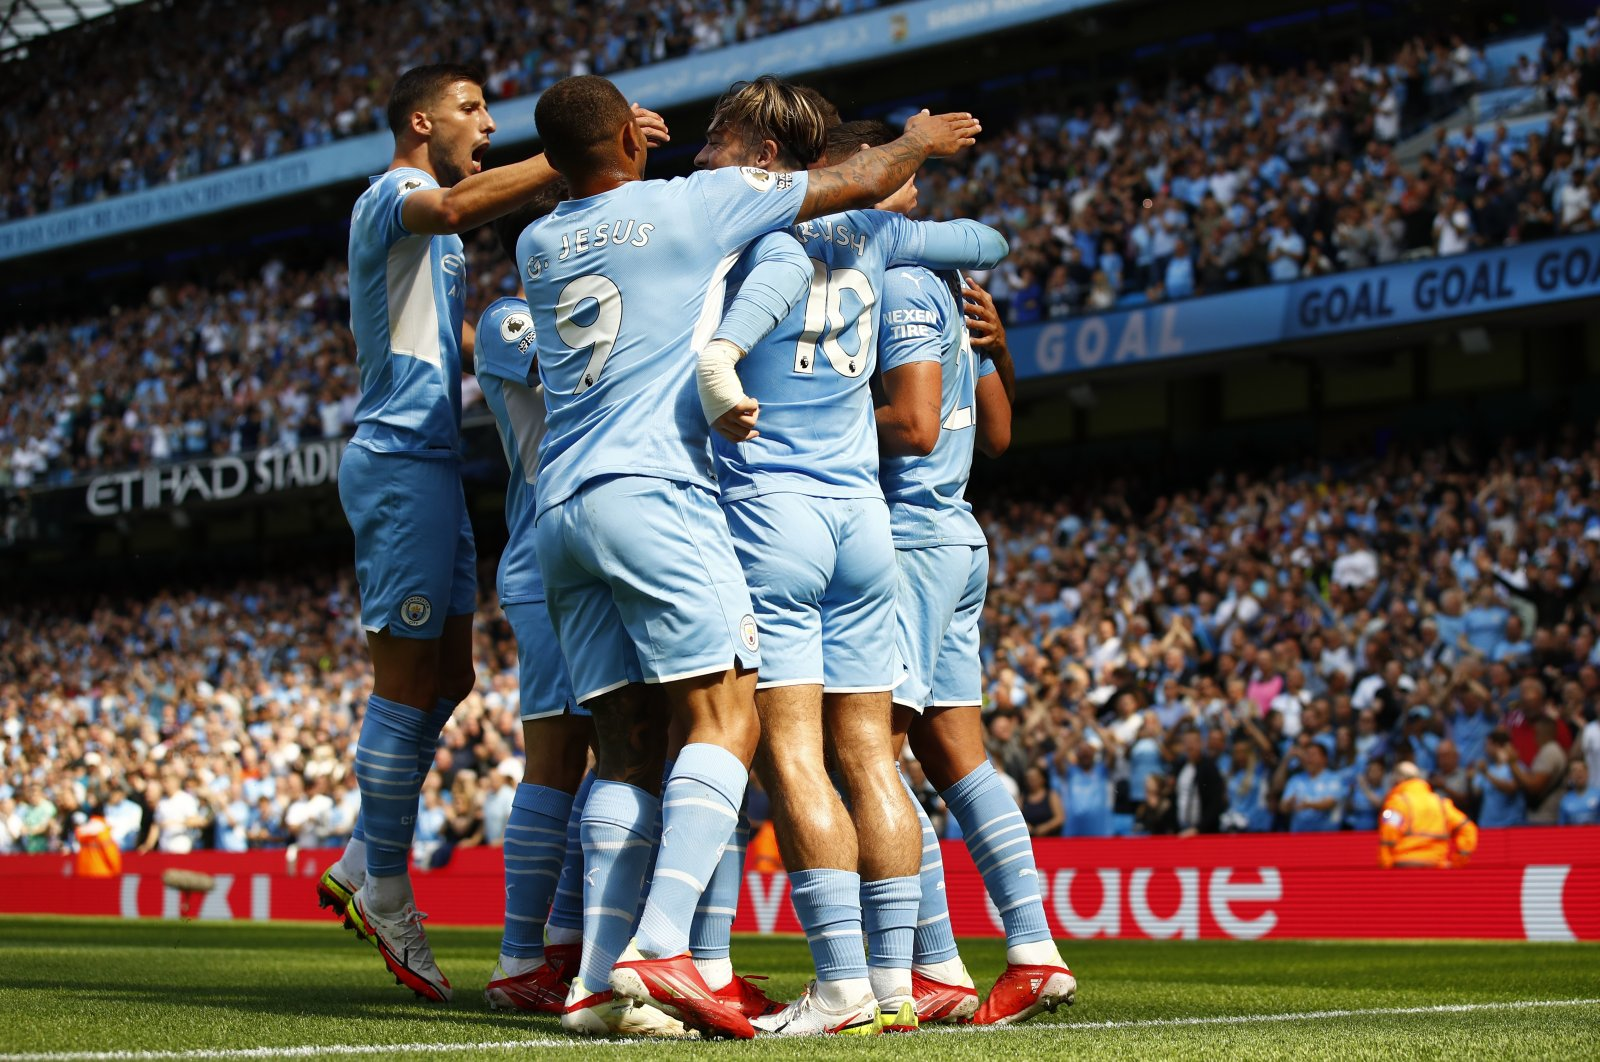 Manchester City's Ferran Torres celebrates after scoring his side's second goal during the English Premier League football match between Manchester City and Arsenal at Etihad stadium in Manchester, England, Aug. 28, 2021. (Reuters Photo)